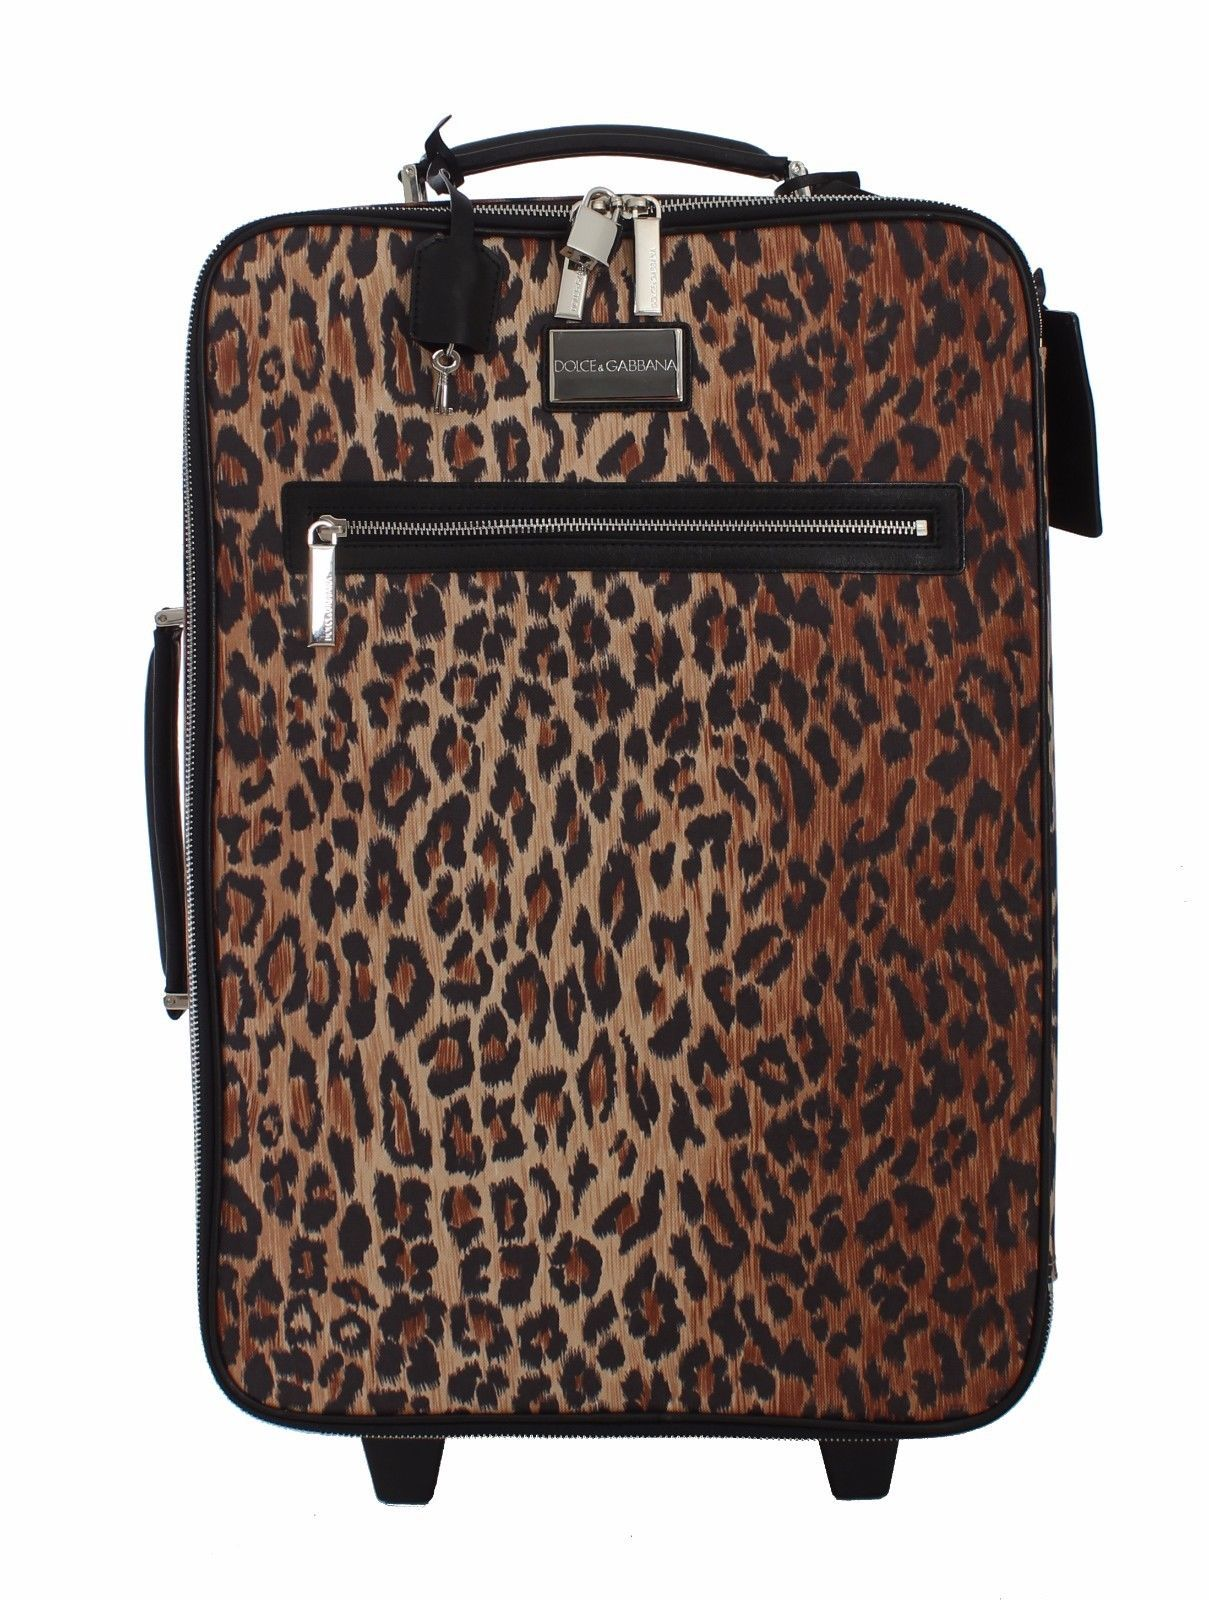 68127ef7abbd Dolce   Gabbana Luggage Bag Leopard Travel Cabin Suitcase Trolley ...